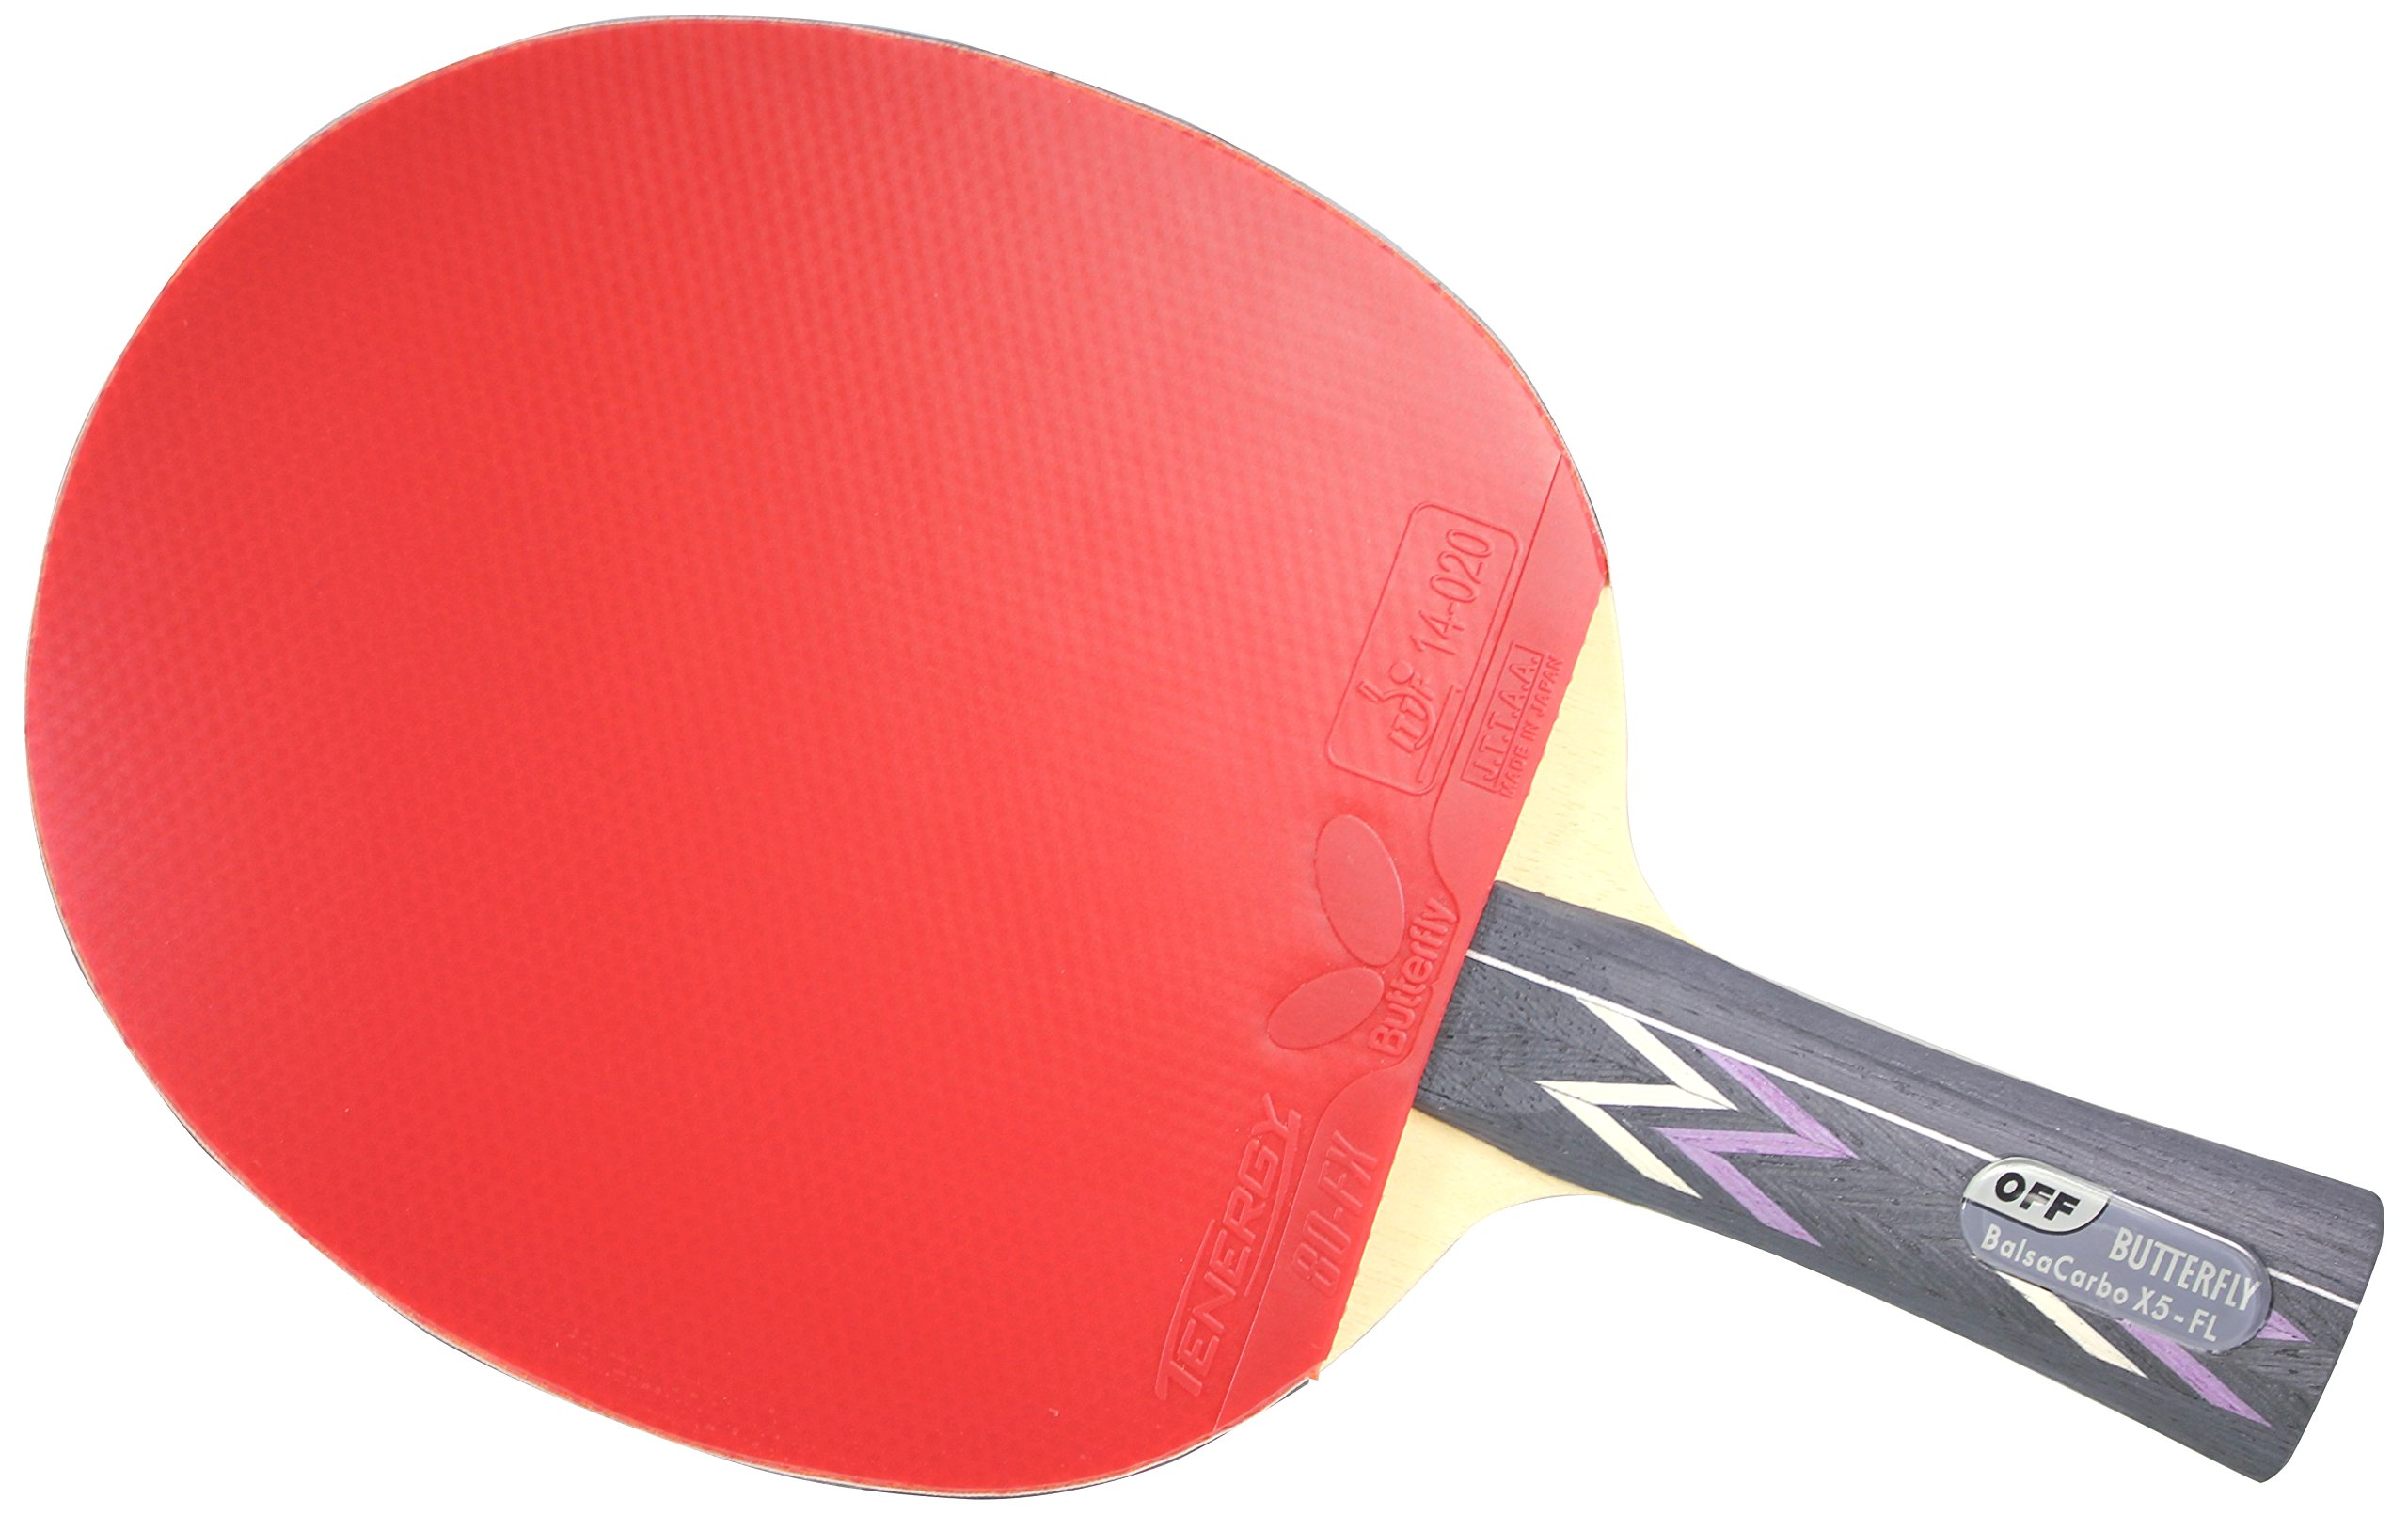 Butterfly Balsa Carbo X5 FL Blade with Tenergy 80 FX 2.1 Red/Black Rubbers Pro-Line Table Tennis Racket by Butterfly